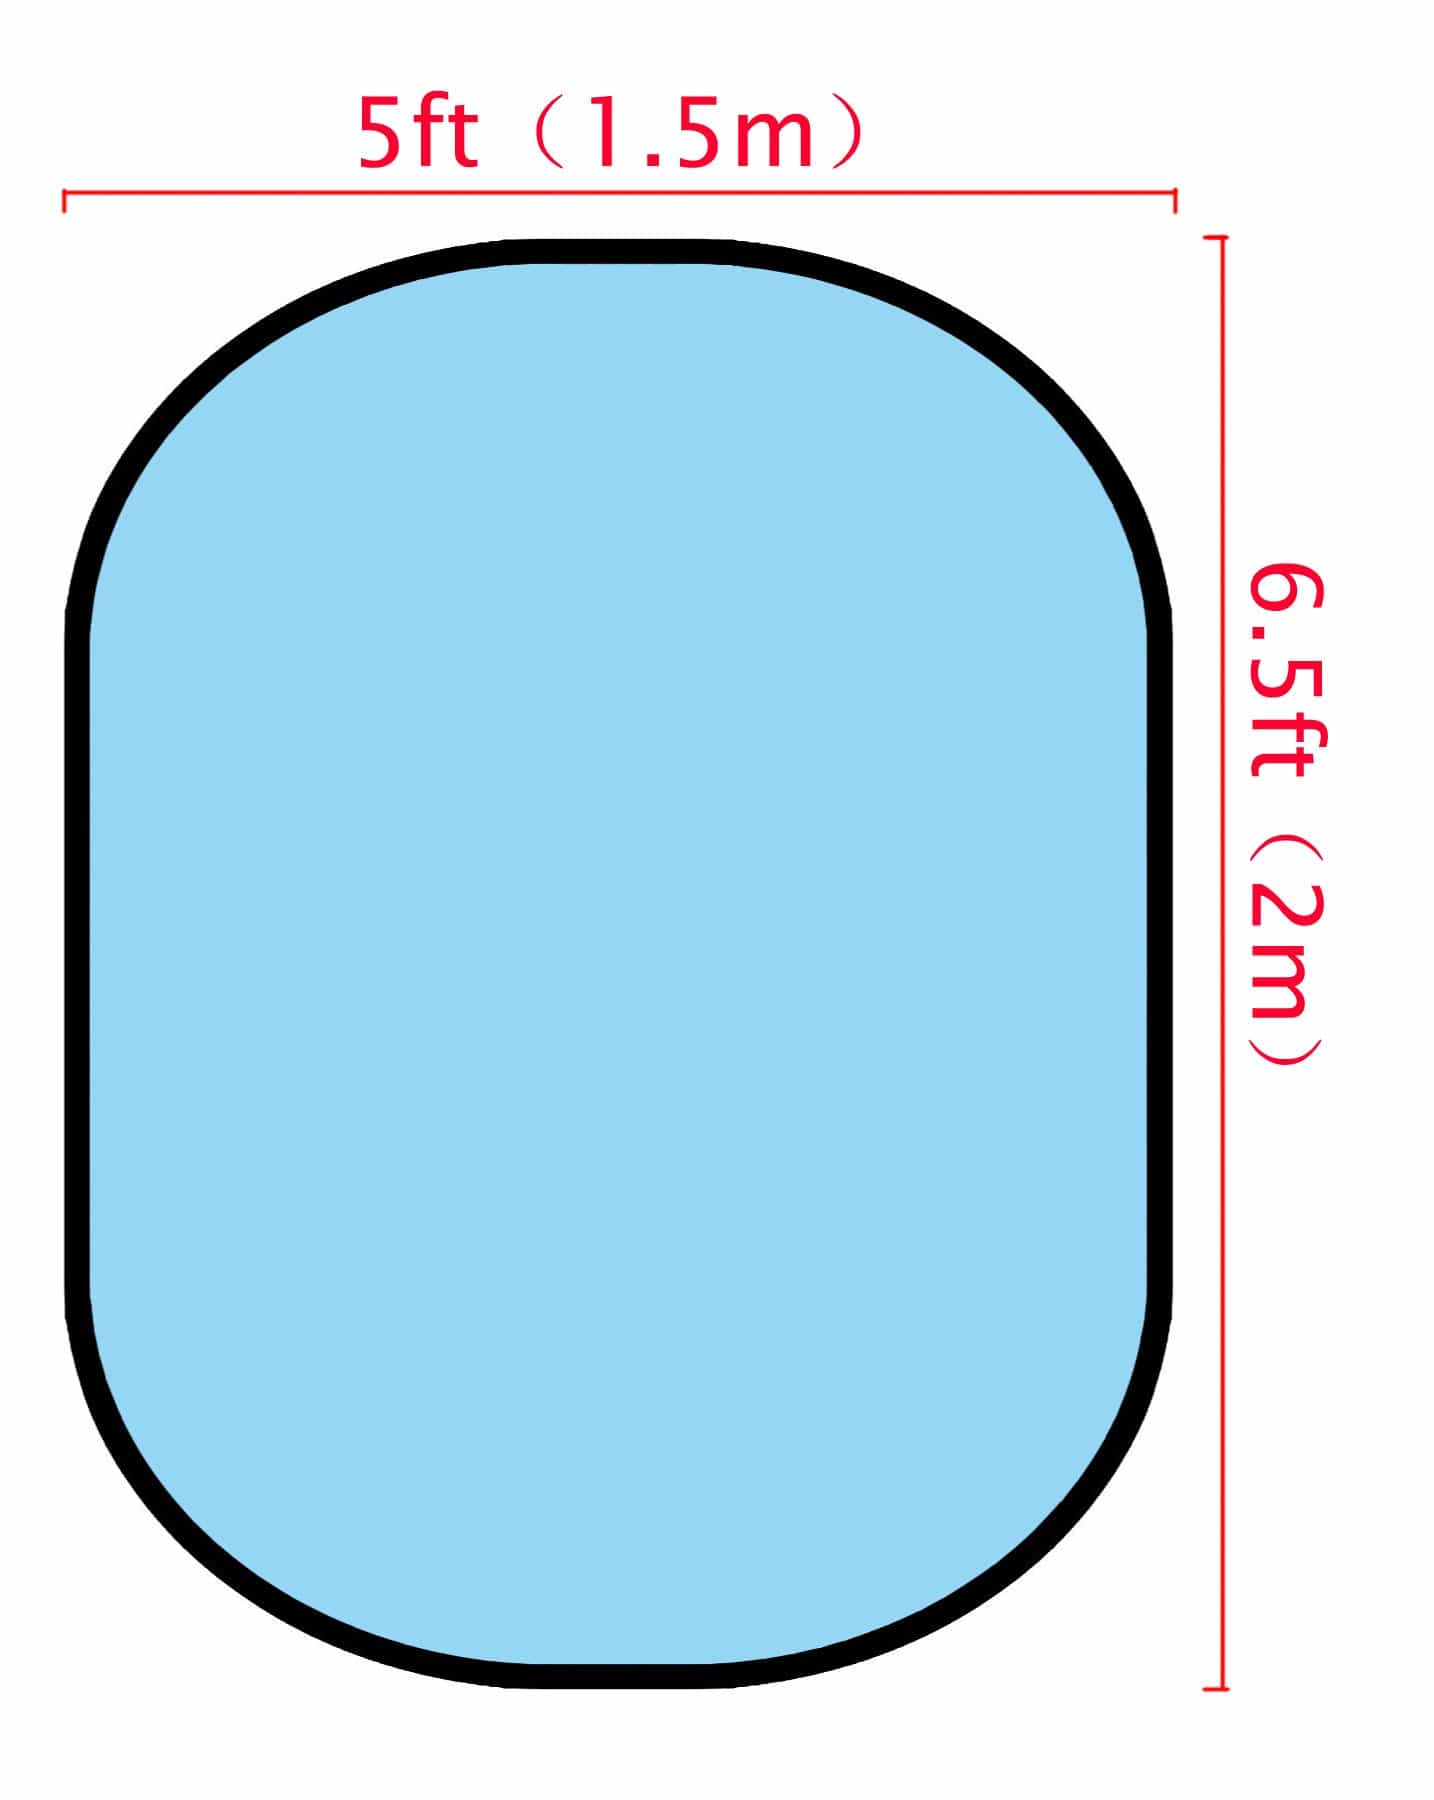 Load image into Gallery viewer, Katebackdrop£ºKate Solid Light Blue/ Solid Rose Red Collapsible Backdrop Photography 5X6.5ft(1.5x2m)